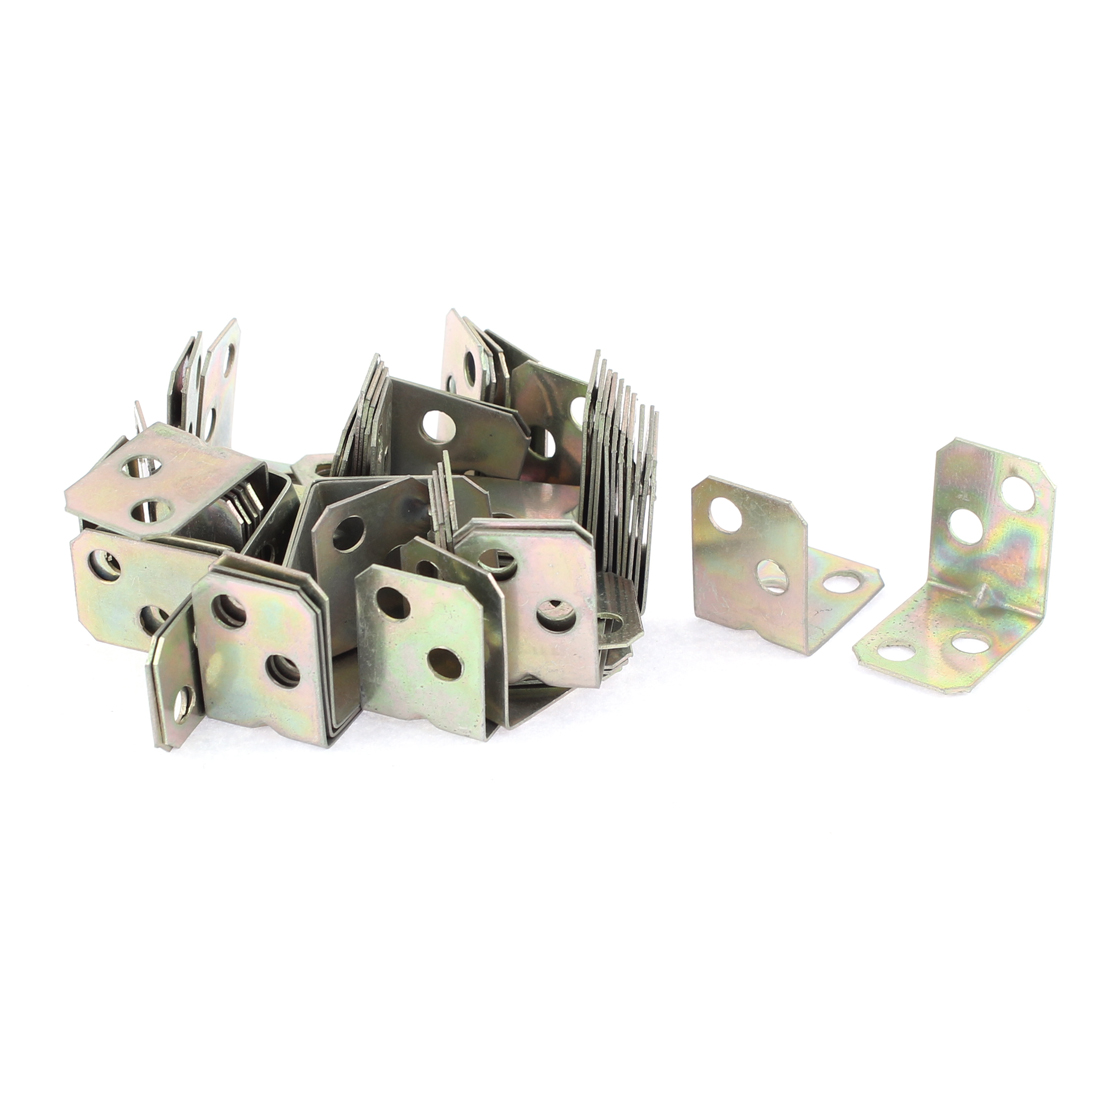 Furniture Door 90 Degree Corner Angle Brackets Fasteners Support 16x16x20mm 50pcs